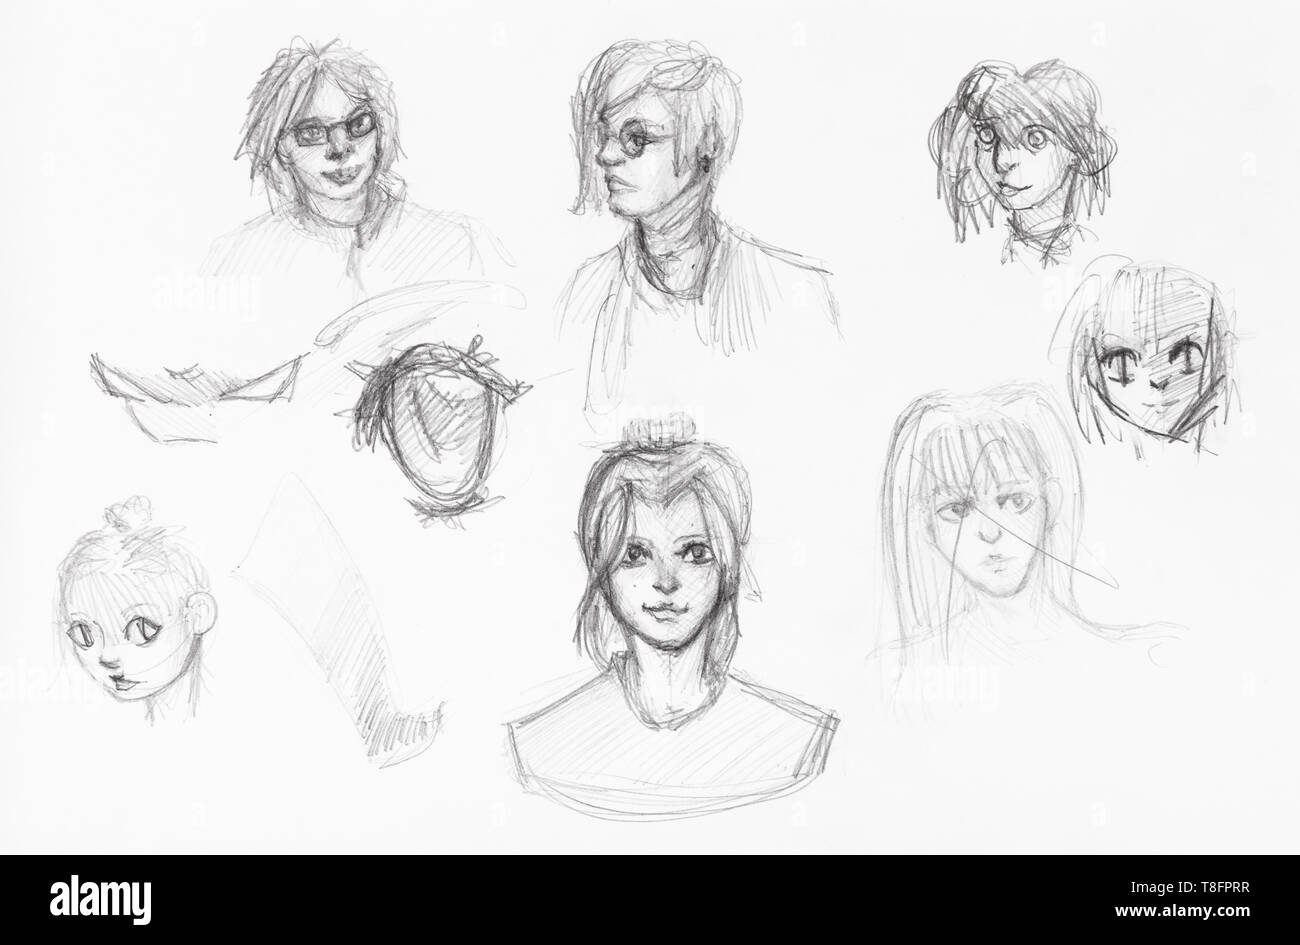 Sketches of various heads of girls and boys hand drawn by